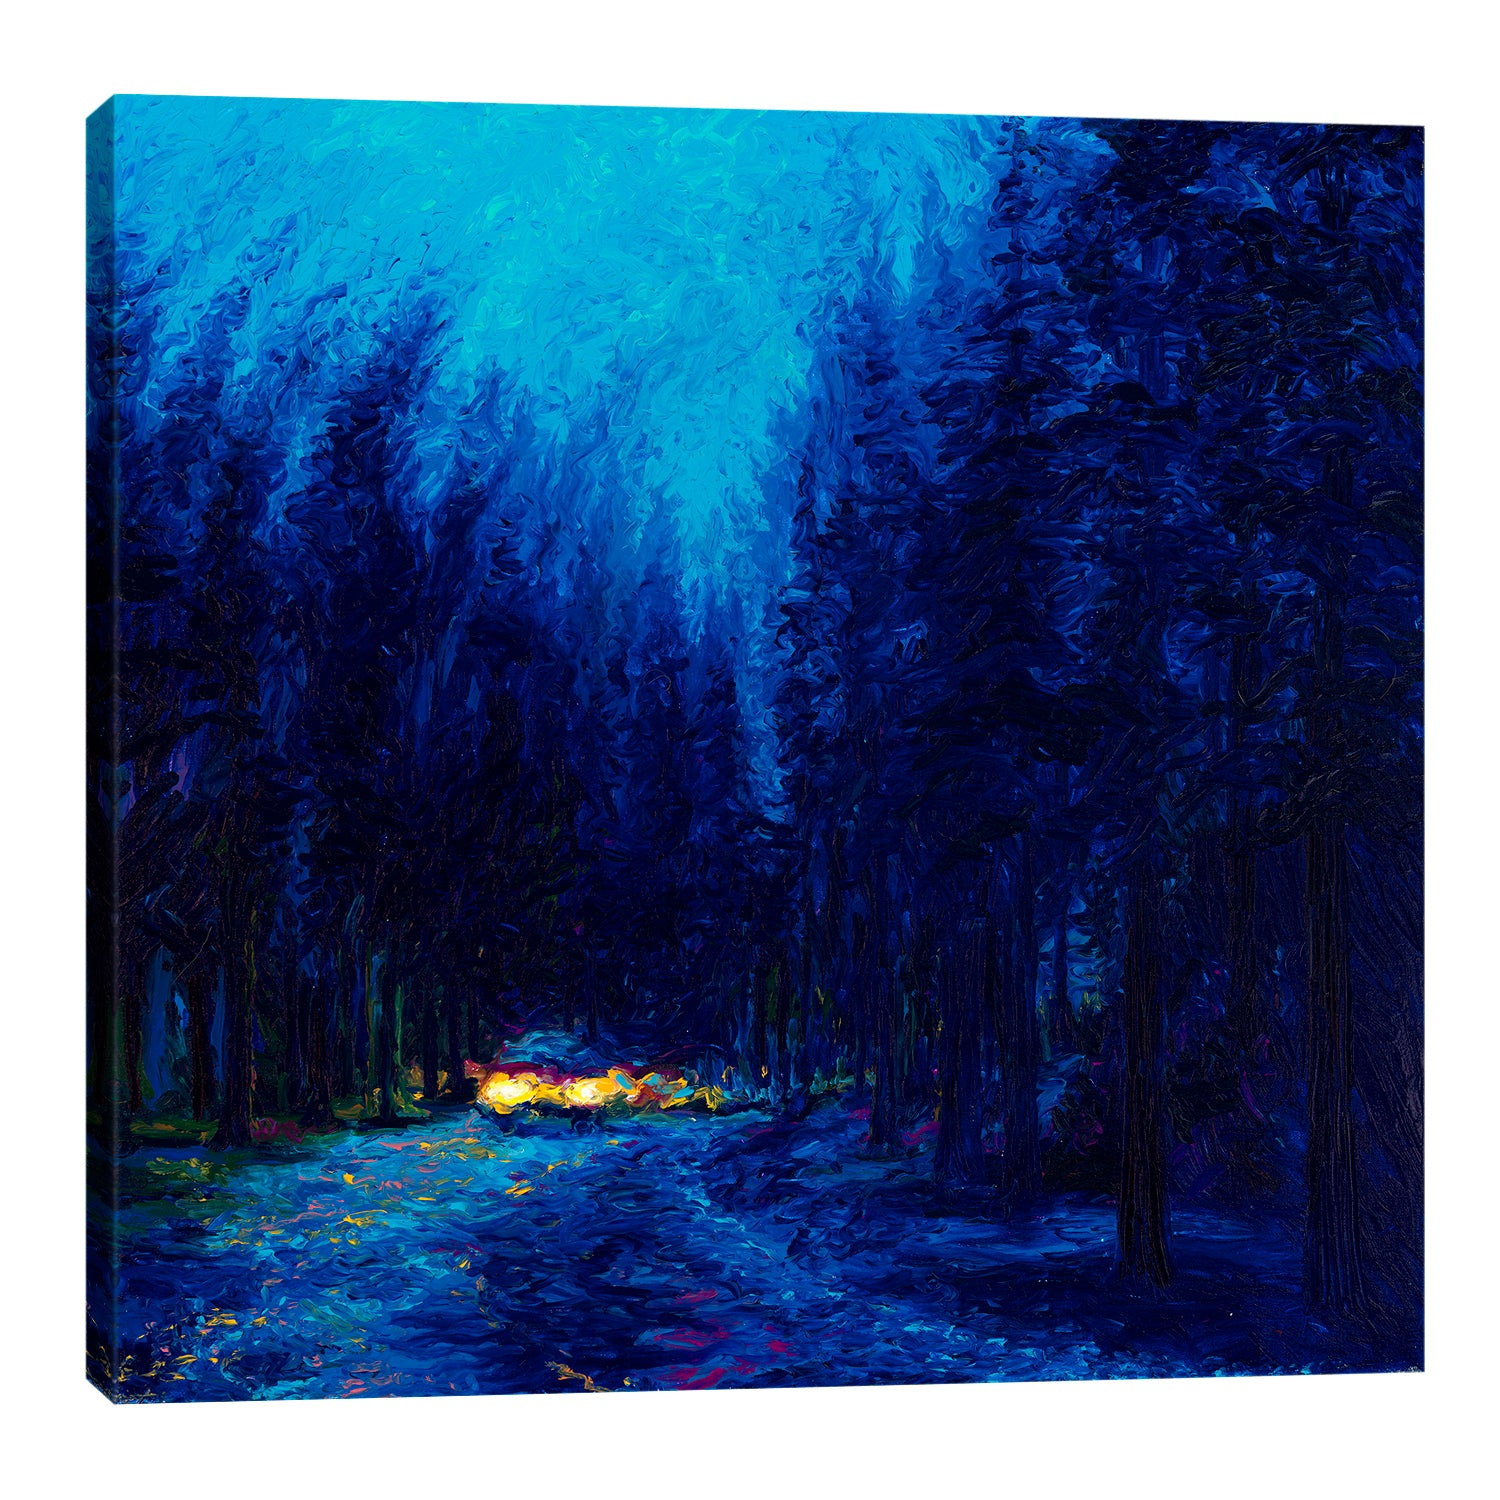 Iris-Scott,Modern & Contemporary,Landscape & Nature,lights,trees,forests,cars,automotive,